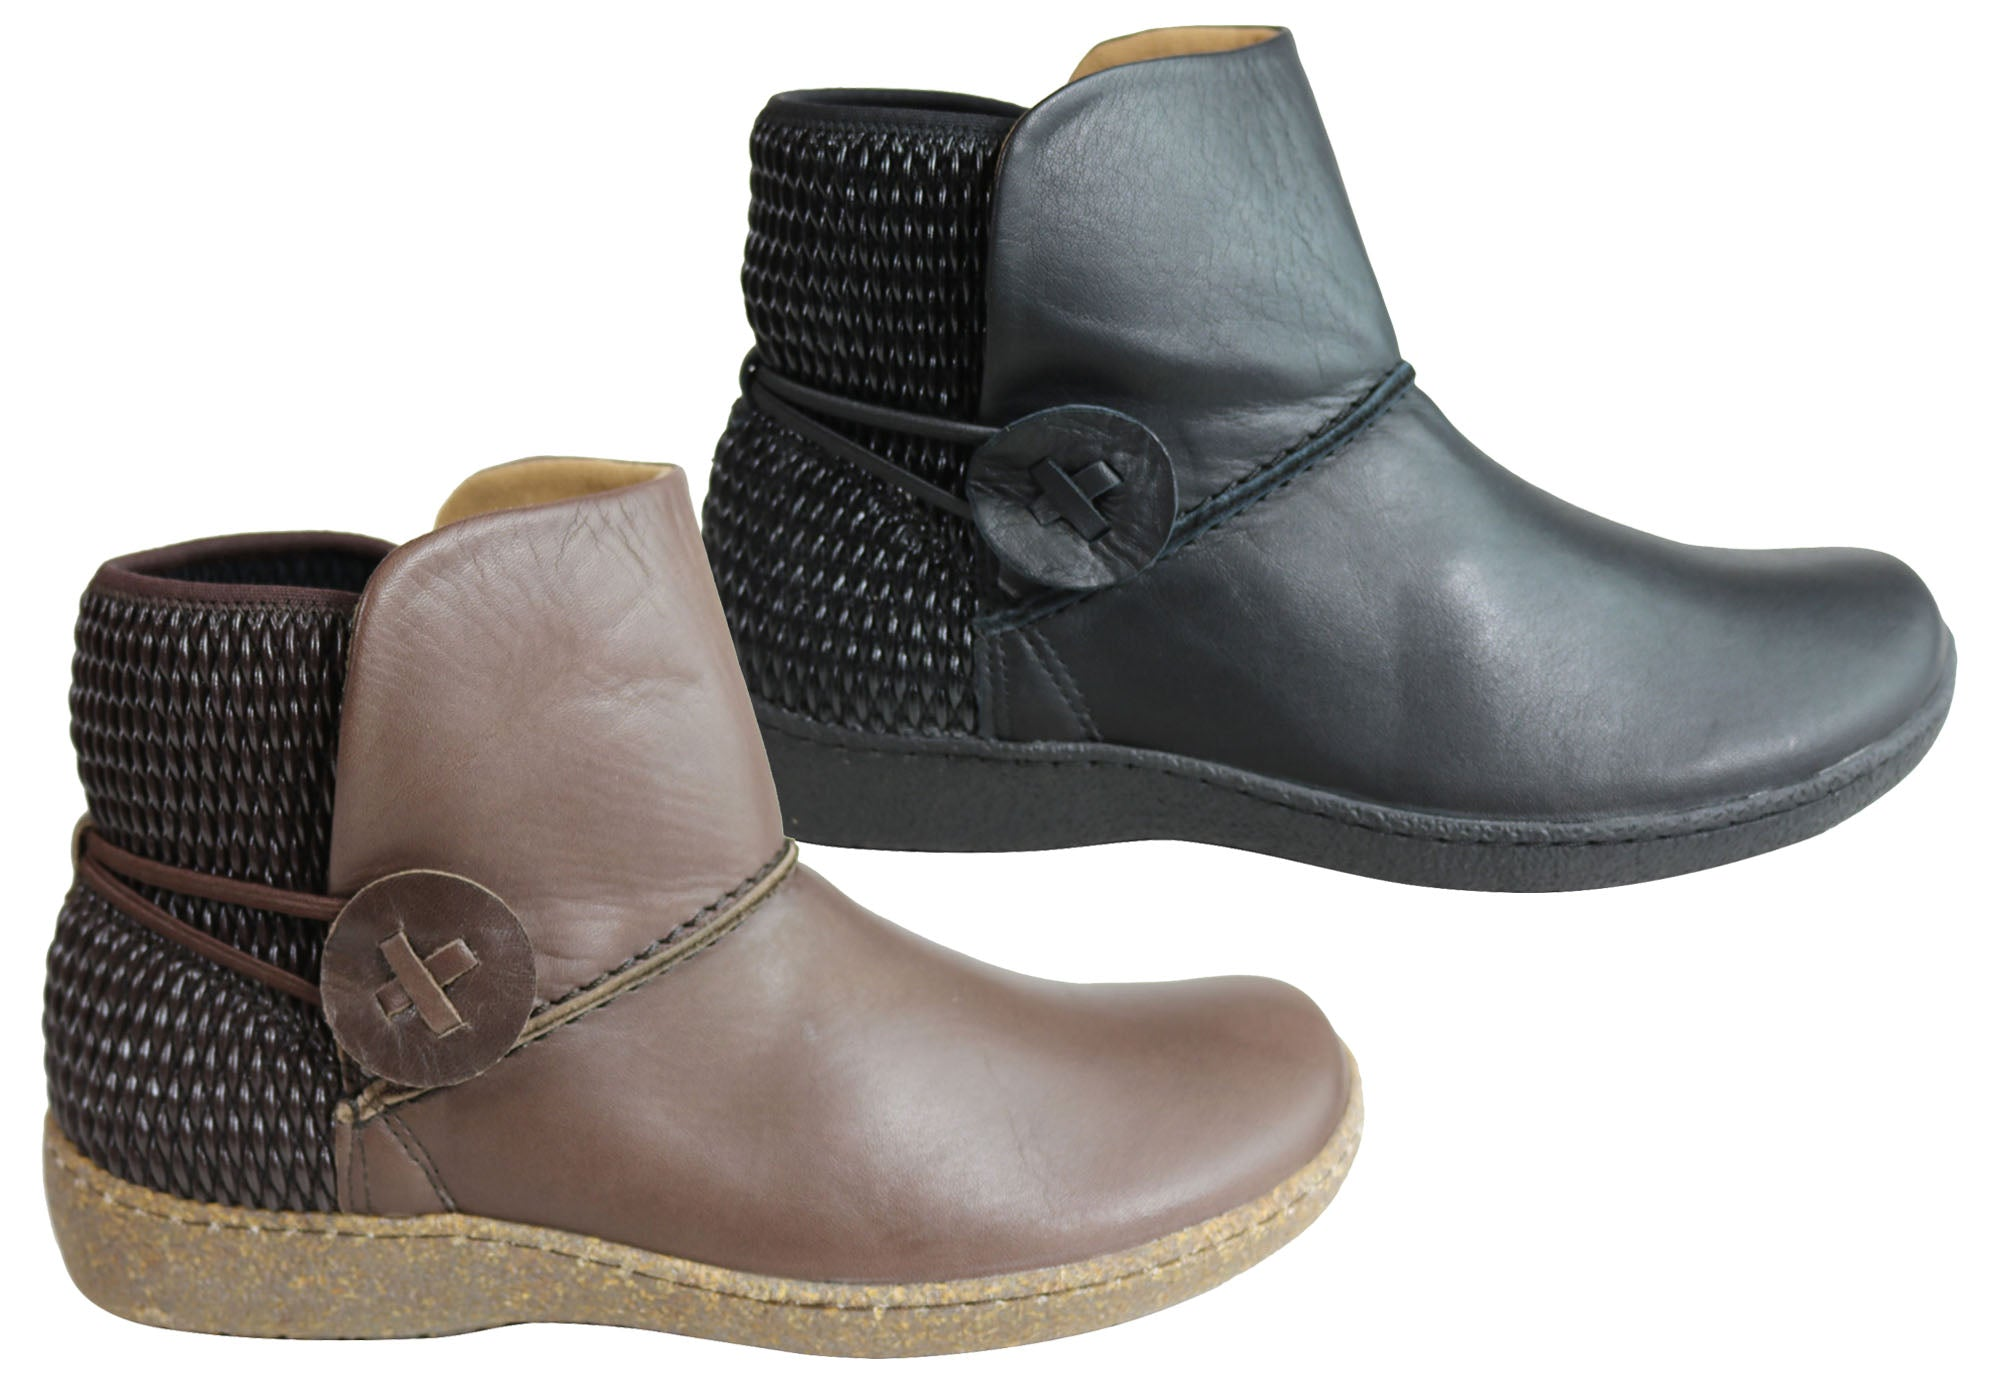 NEW FLEX /& GO GAURA2 WOMENS COMFORT LEATHER ANKLE BOOTS MADE IN PORTUGAL